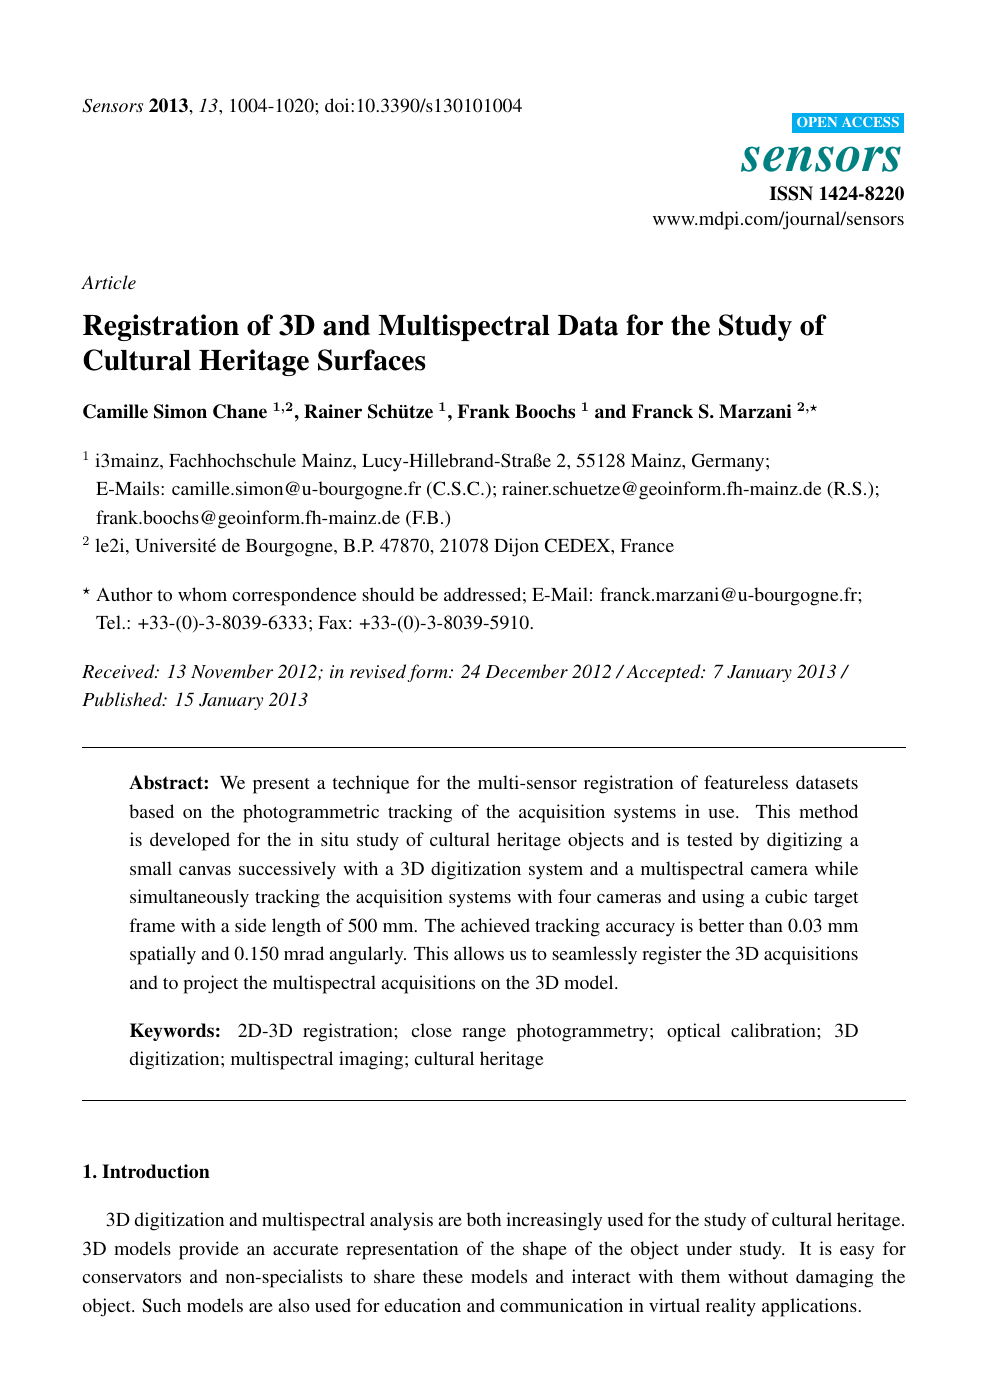 Registration of 3D and Multispectral Data for the Study of Cultural